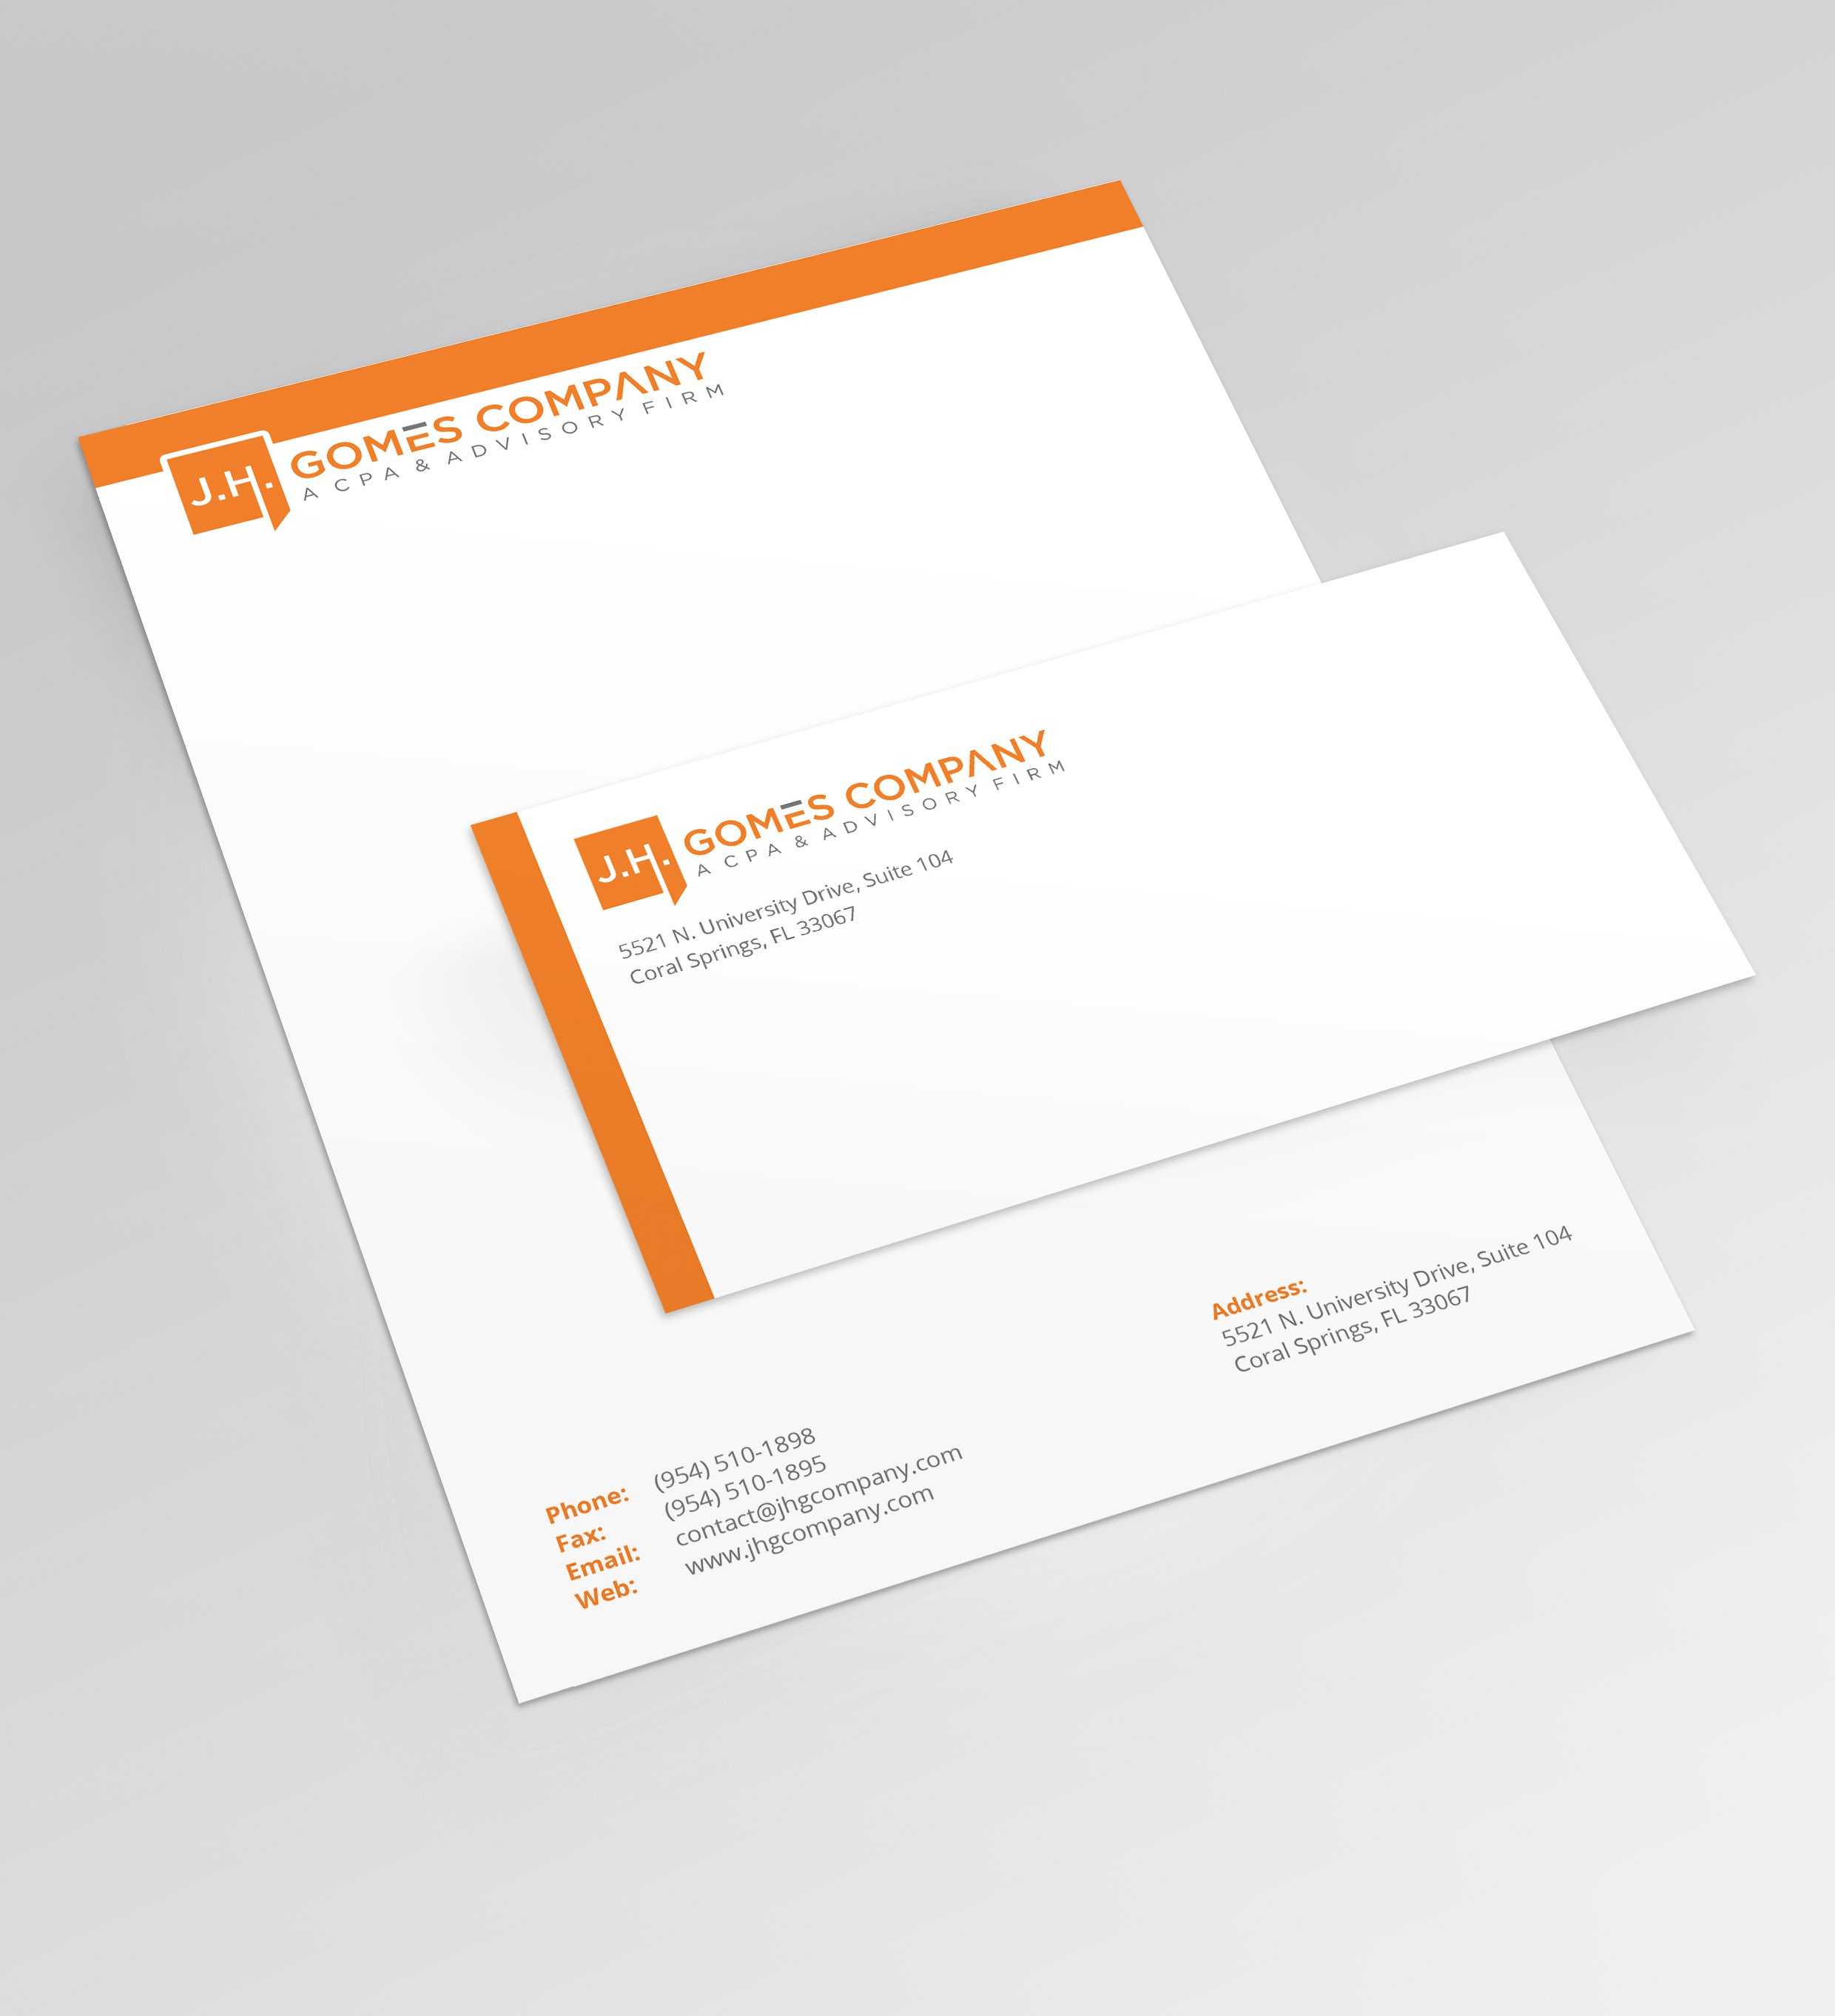 Letterhead and Envelopes in WORD